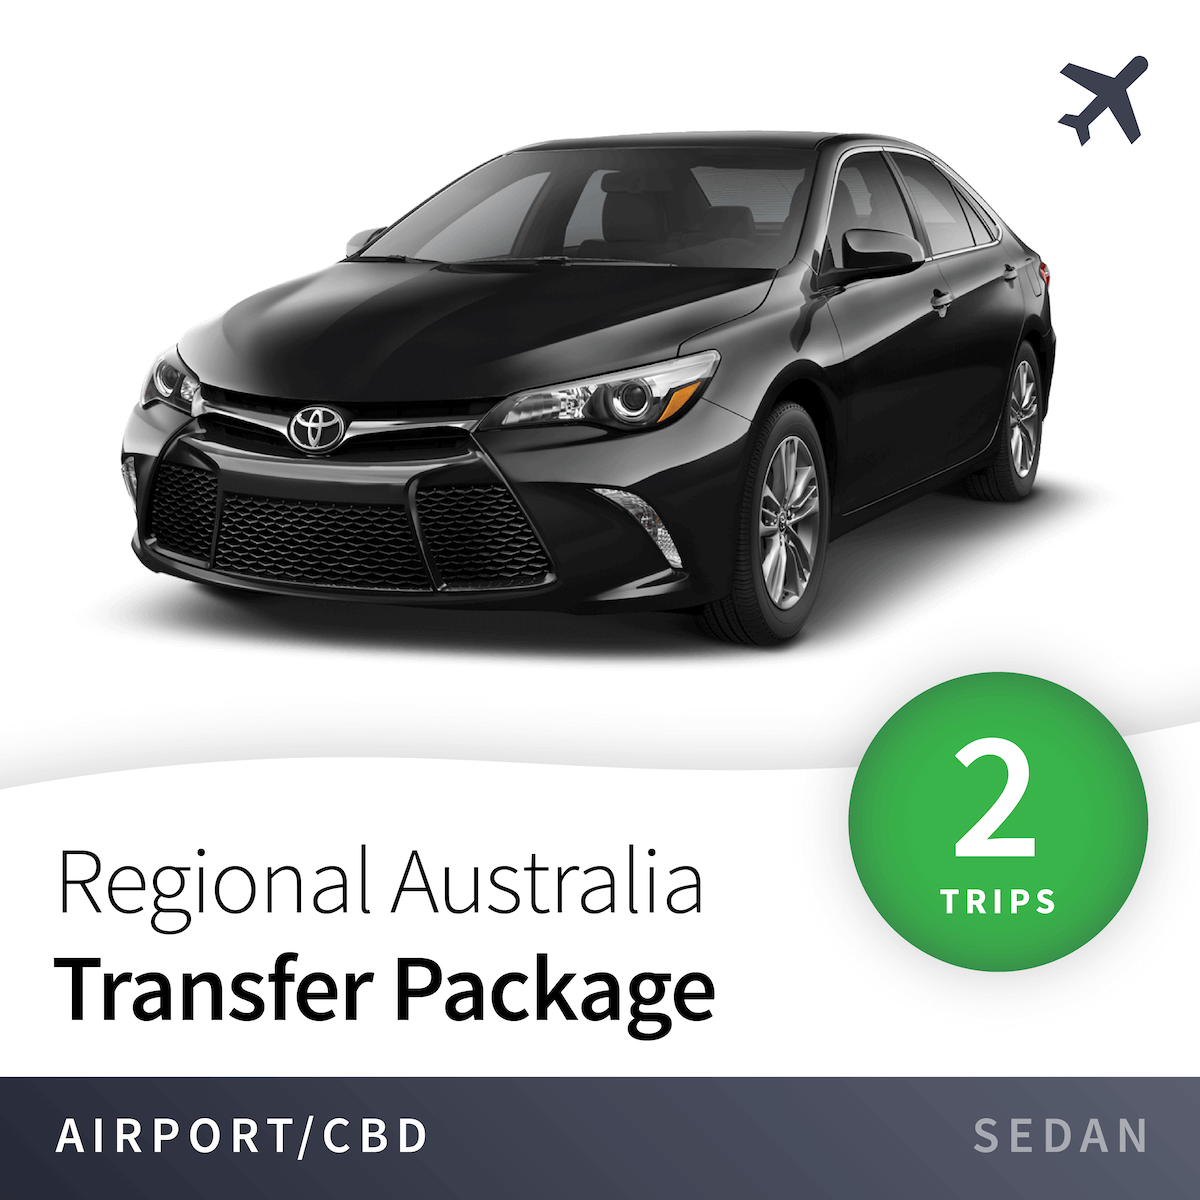 Regional Airport Transfer Package - Sedan (2 Trips) 17